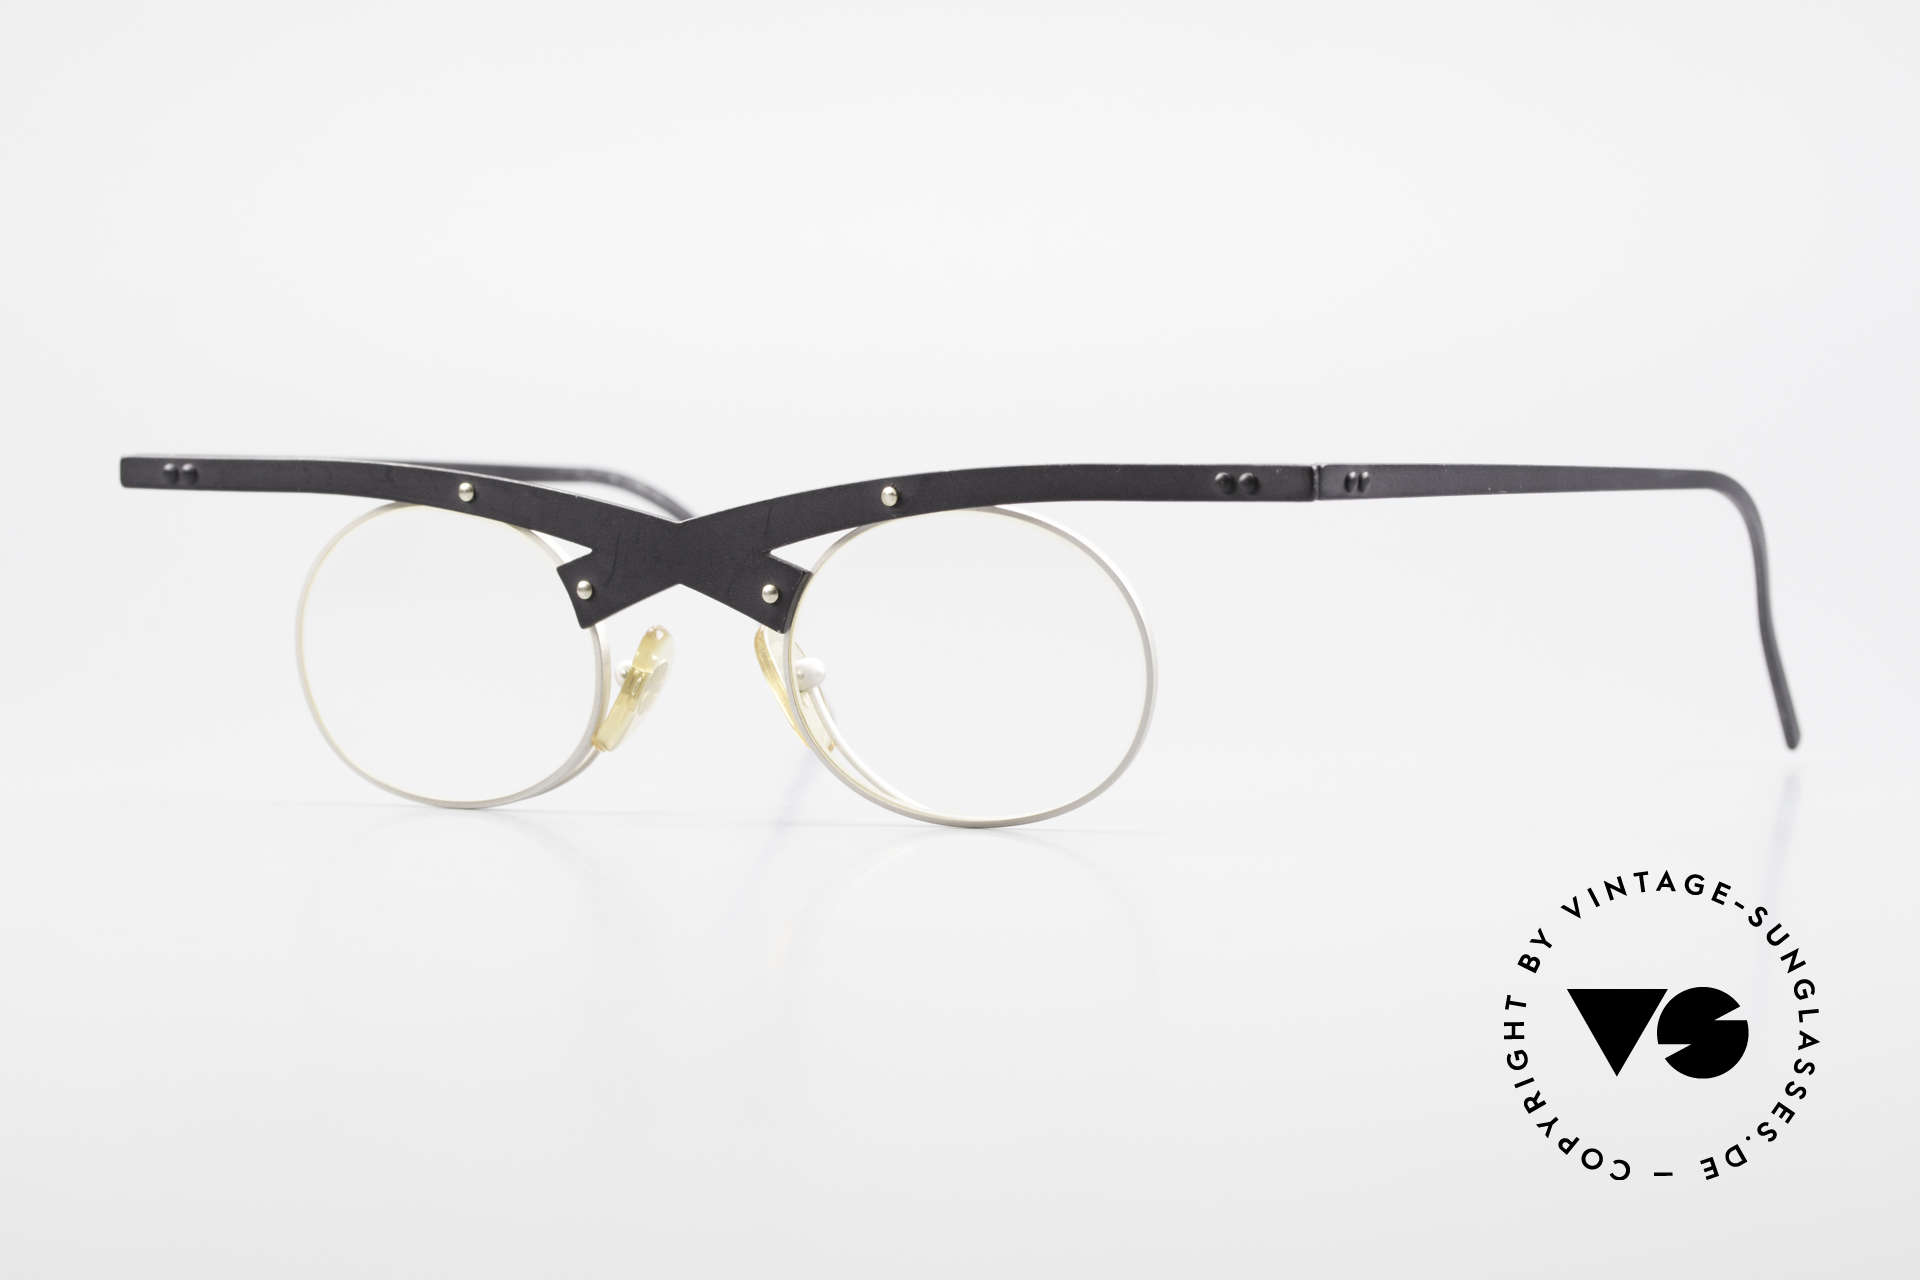 Theo Belgium Hio 11S Crazy 90's Vintage Eyeglasses, Theo Belgium = the most self-willed brand in the world, Made for Men and Women